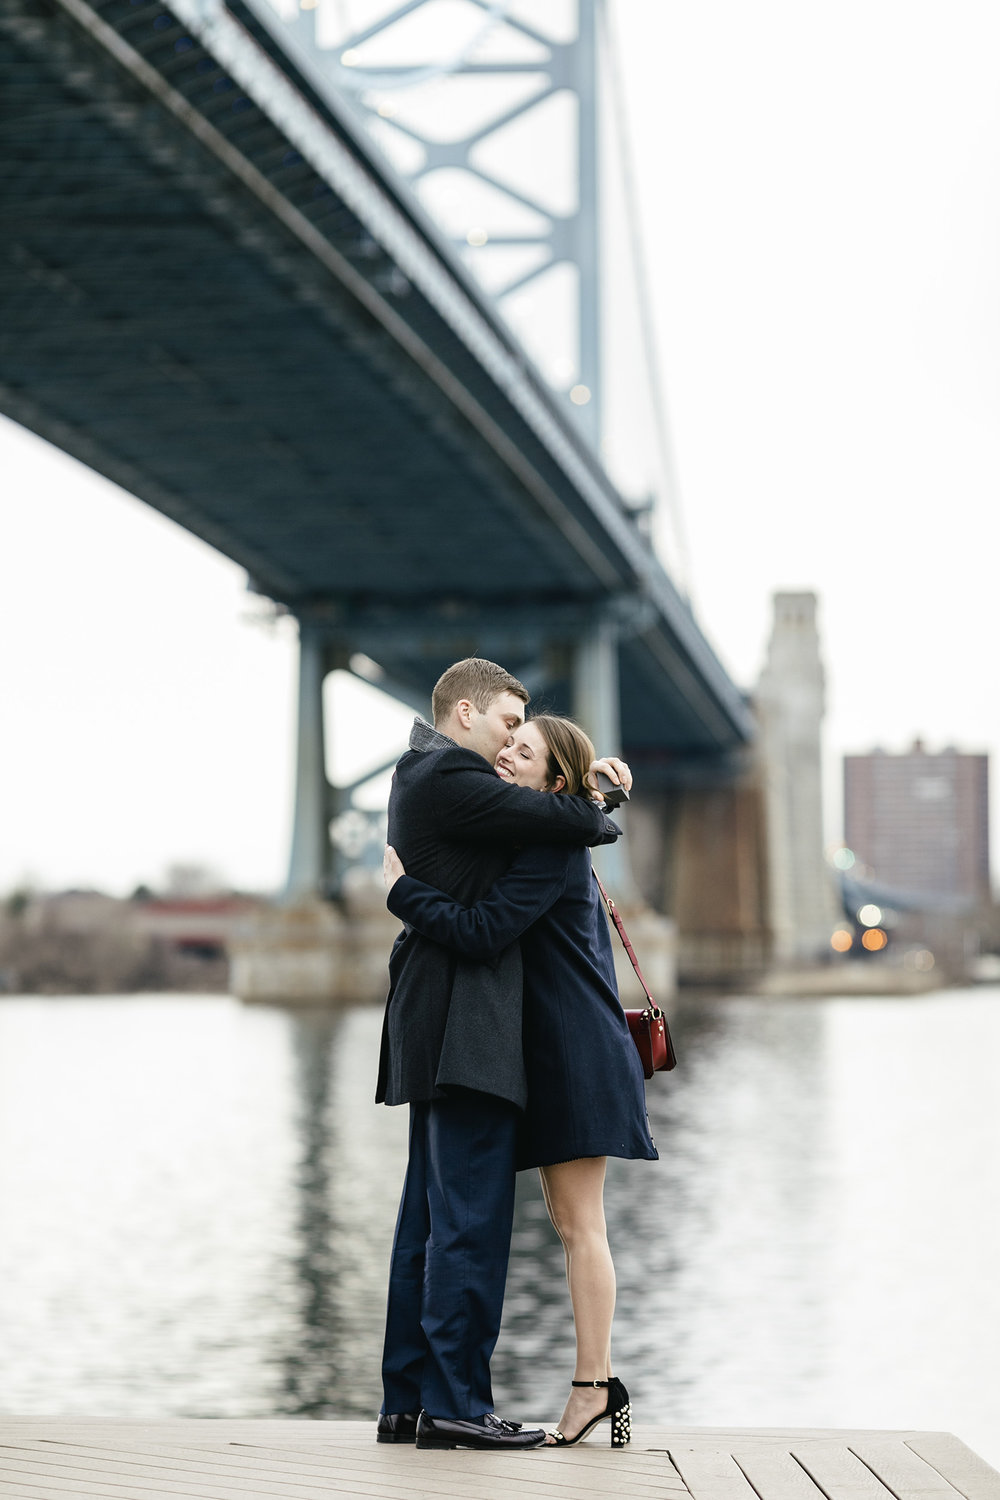 philadelphia_proposal_engagement_race street pier_km_03.JPG